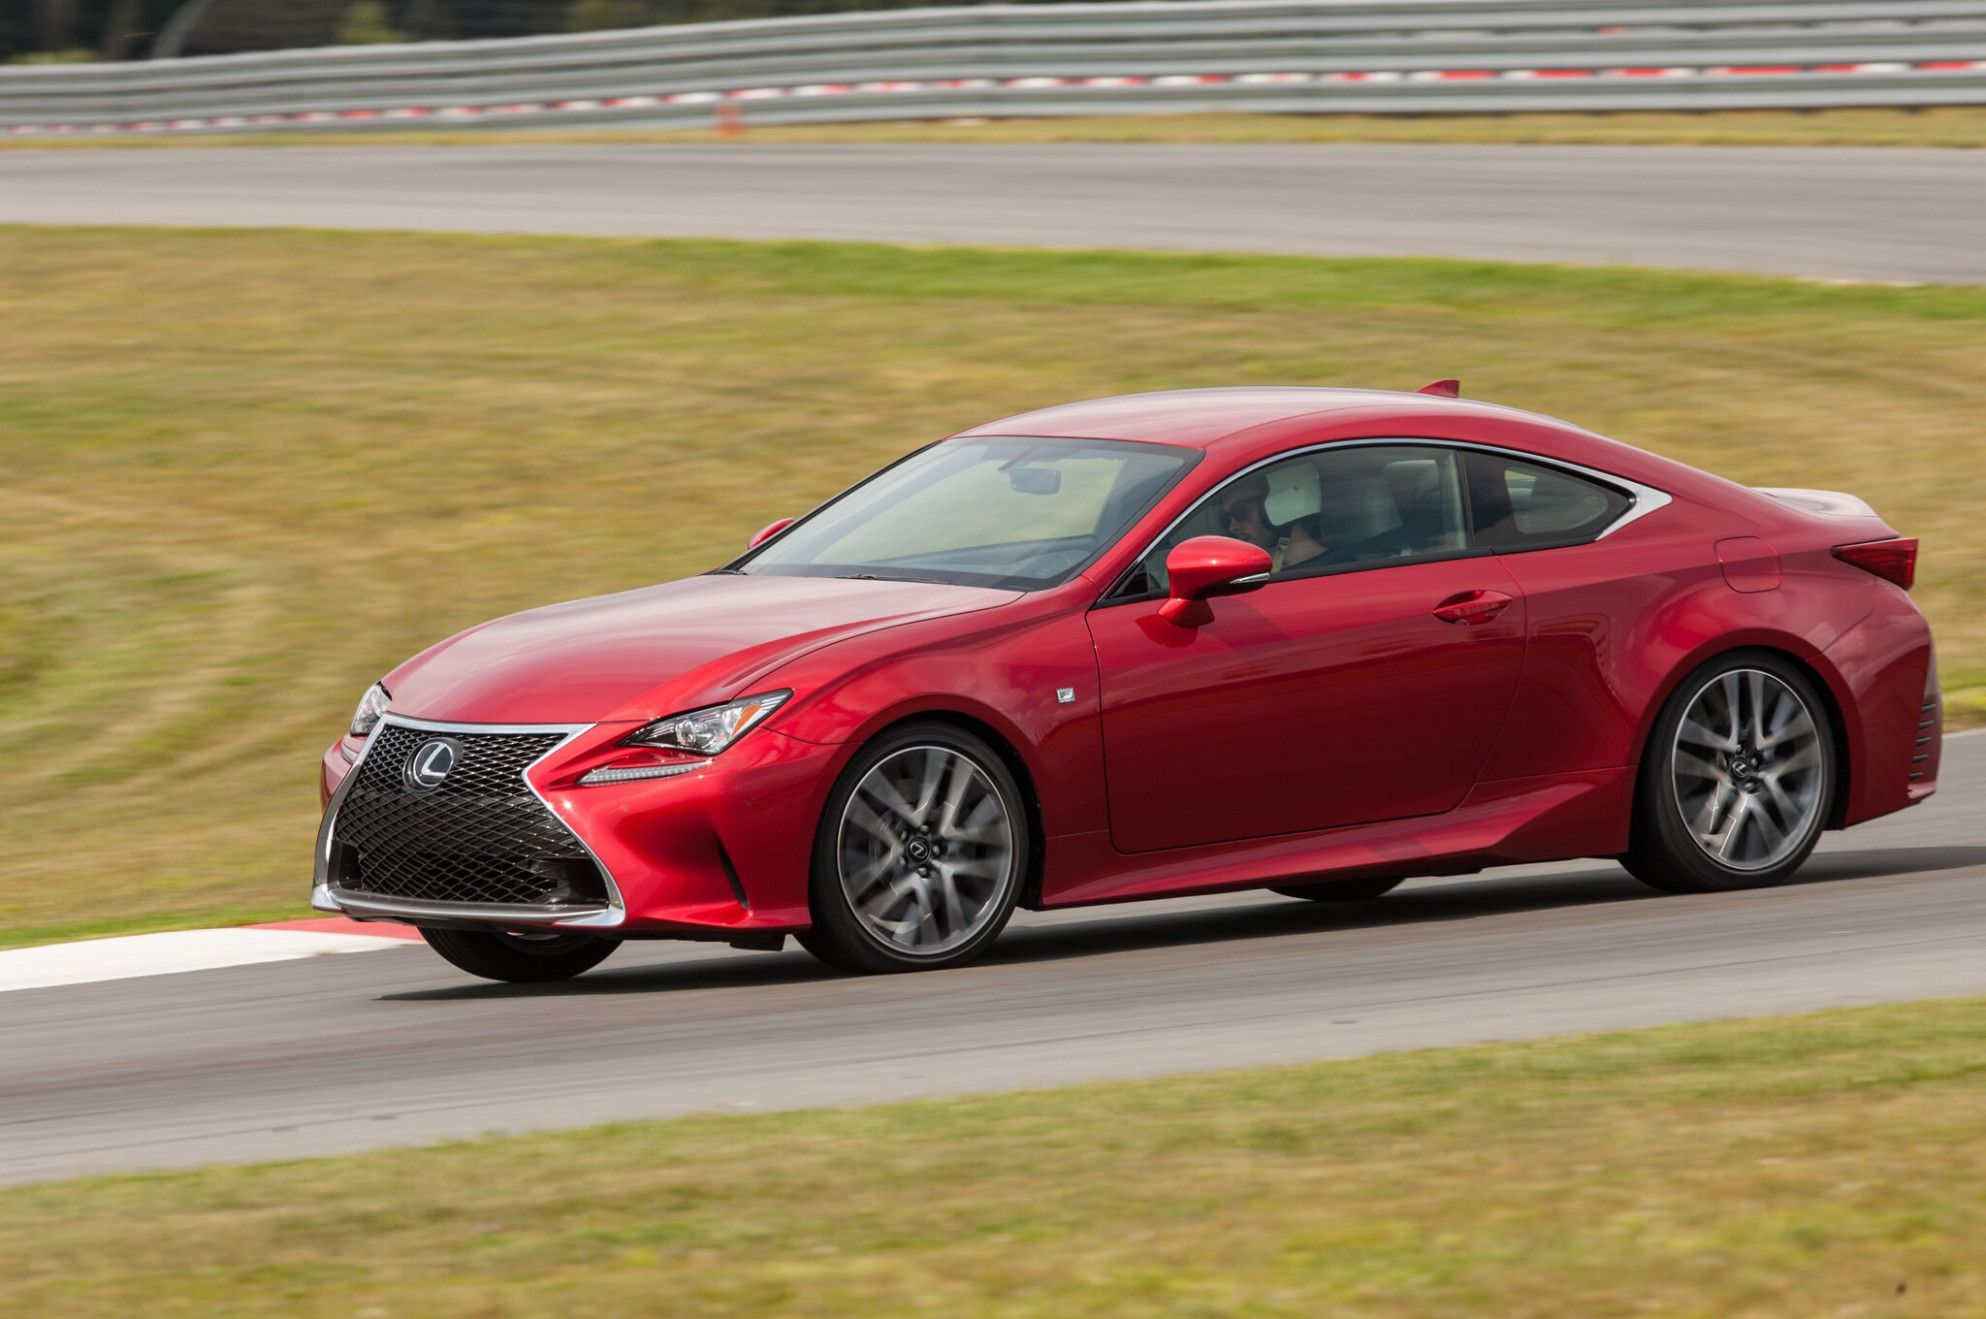 2016 Lexus Rc 350 F Sport For Sale Review And Release Date Sport One Lexus Best Crossover